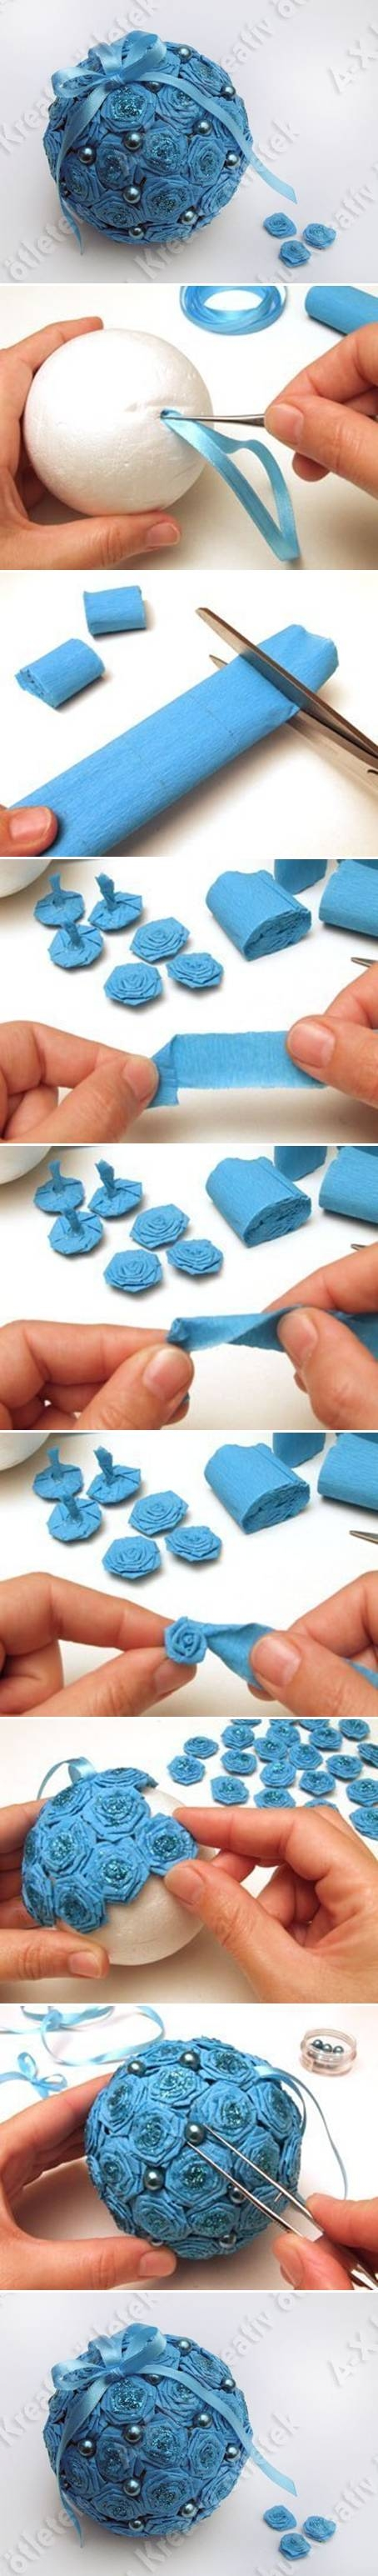 Diy crepe paper flower ball pictures photos and images for diy crepe paper flower ball mightylinksfo